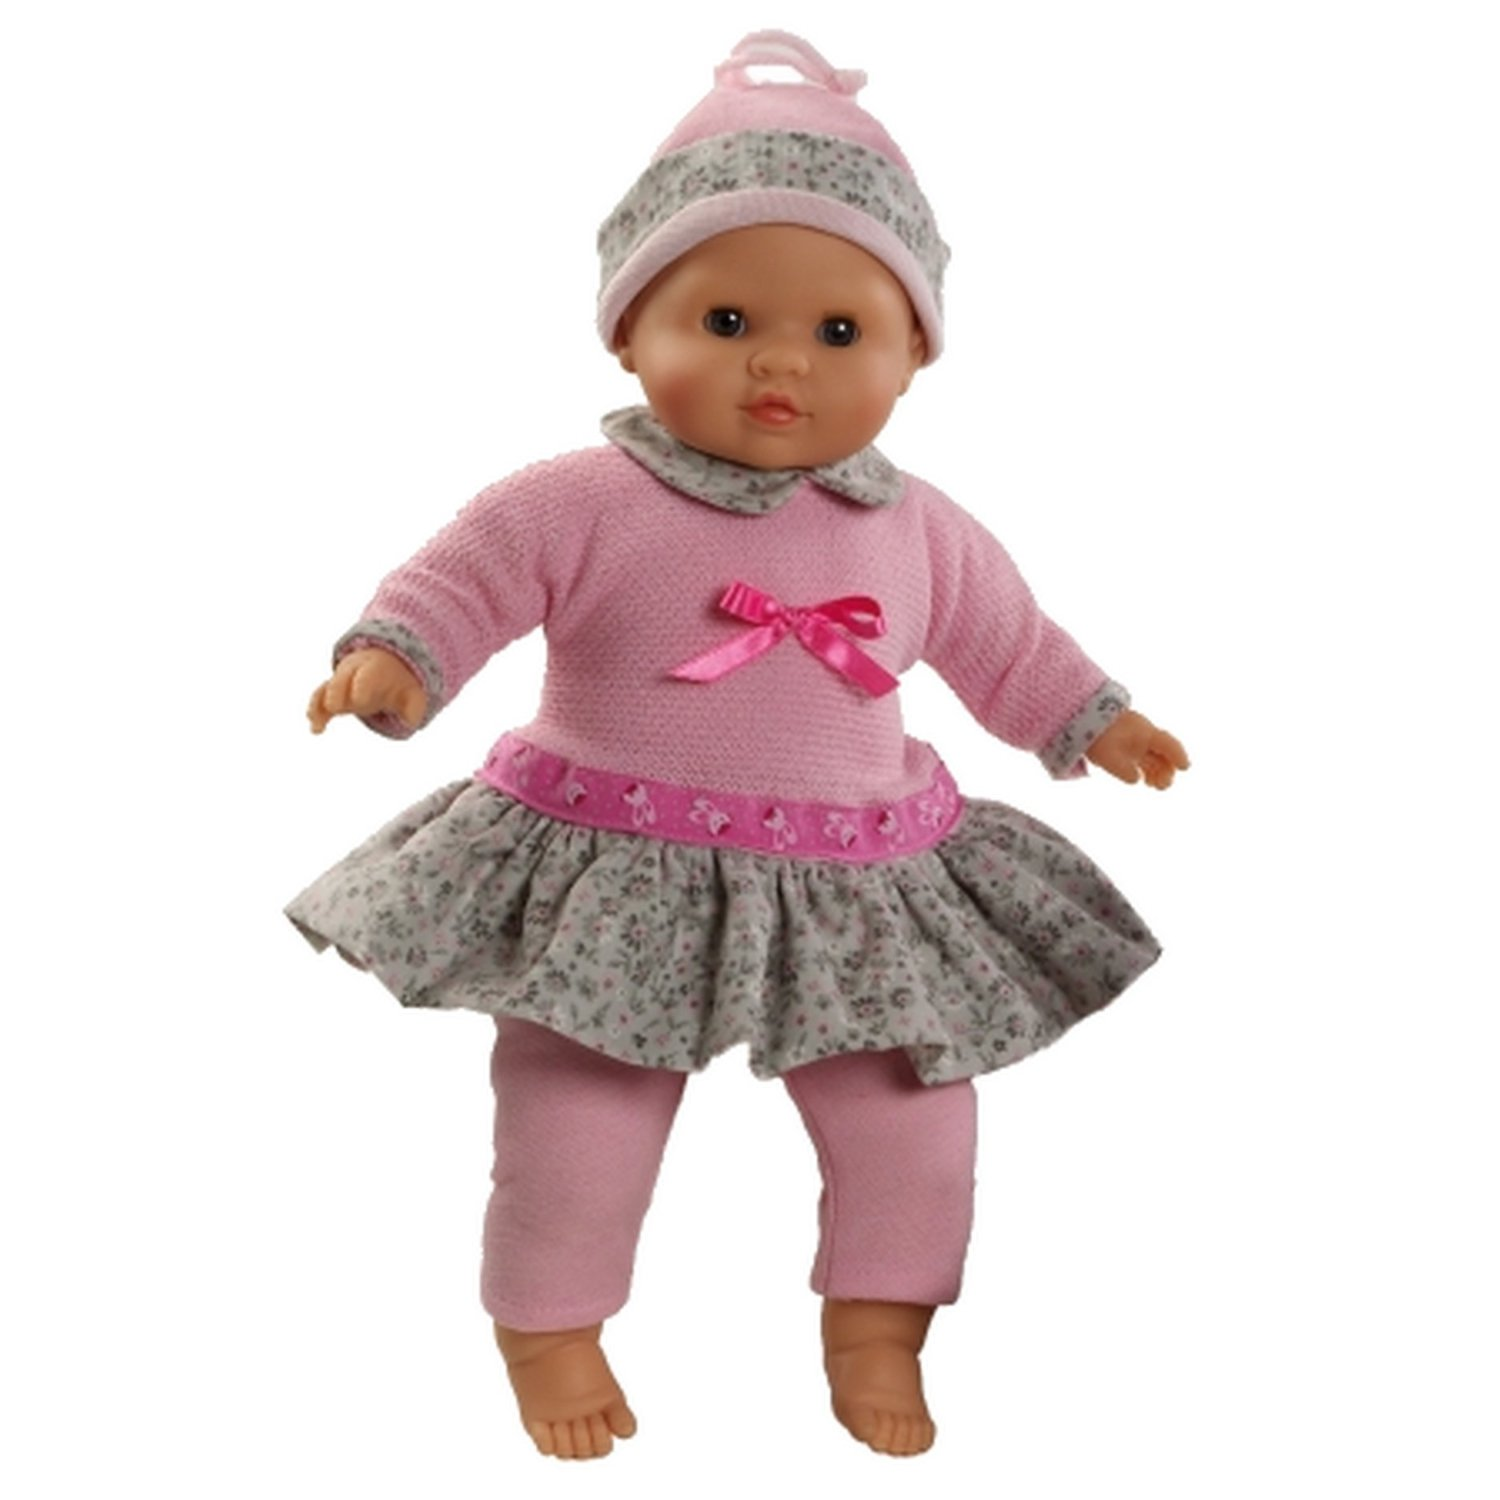 """Paola Reina Los Manus Amy 14"""" Baby Doll (Made in Spain)"""